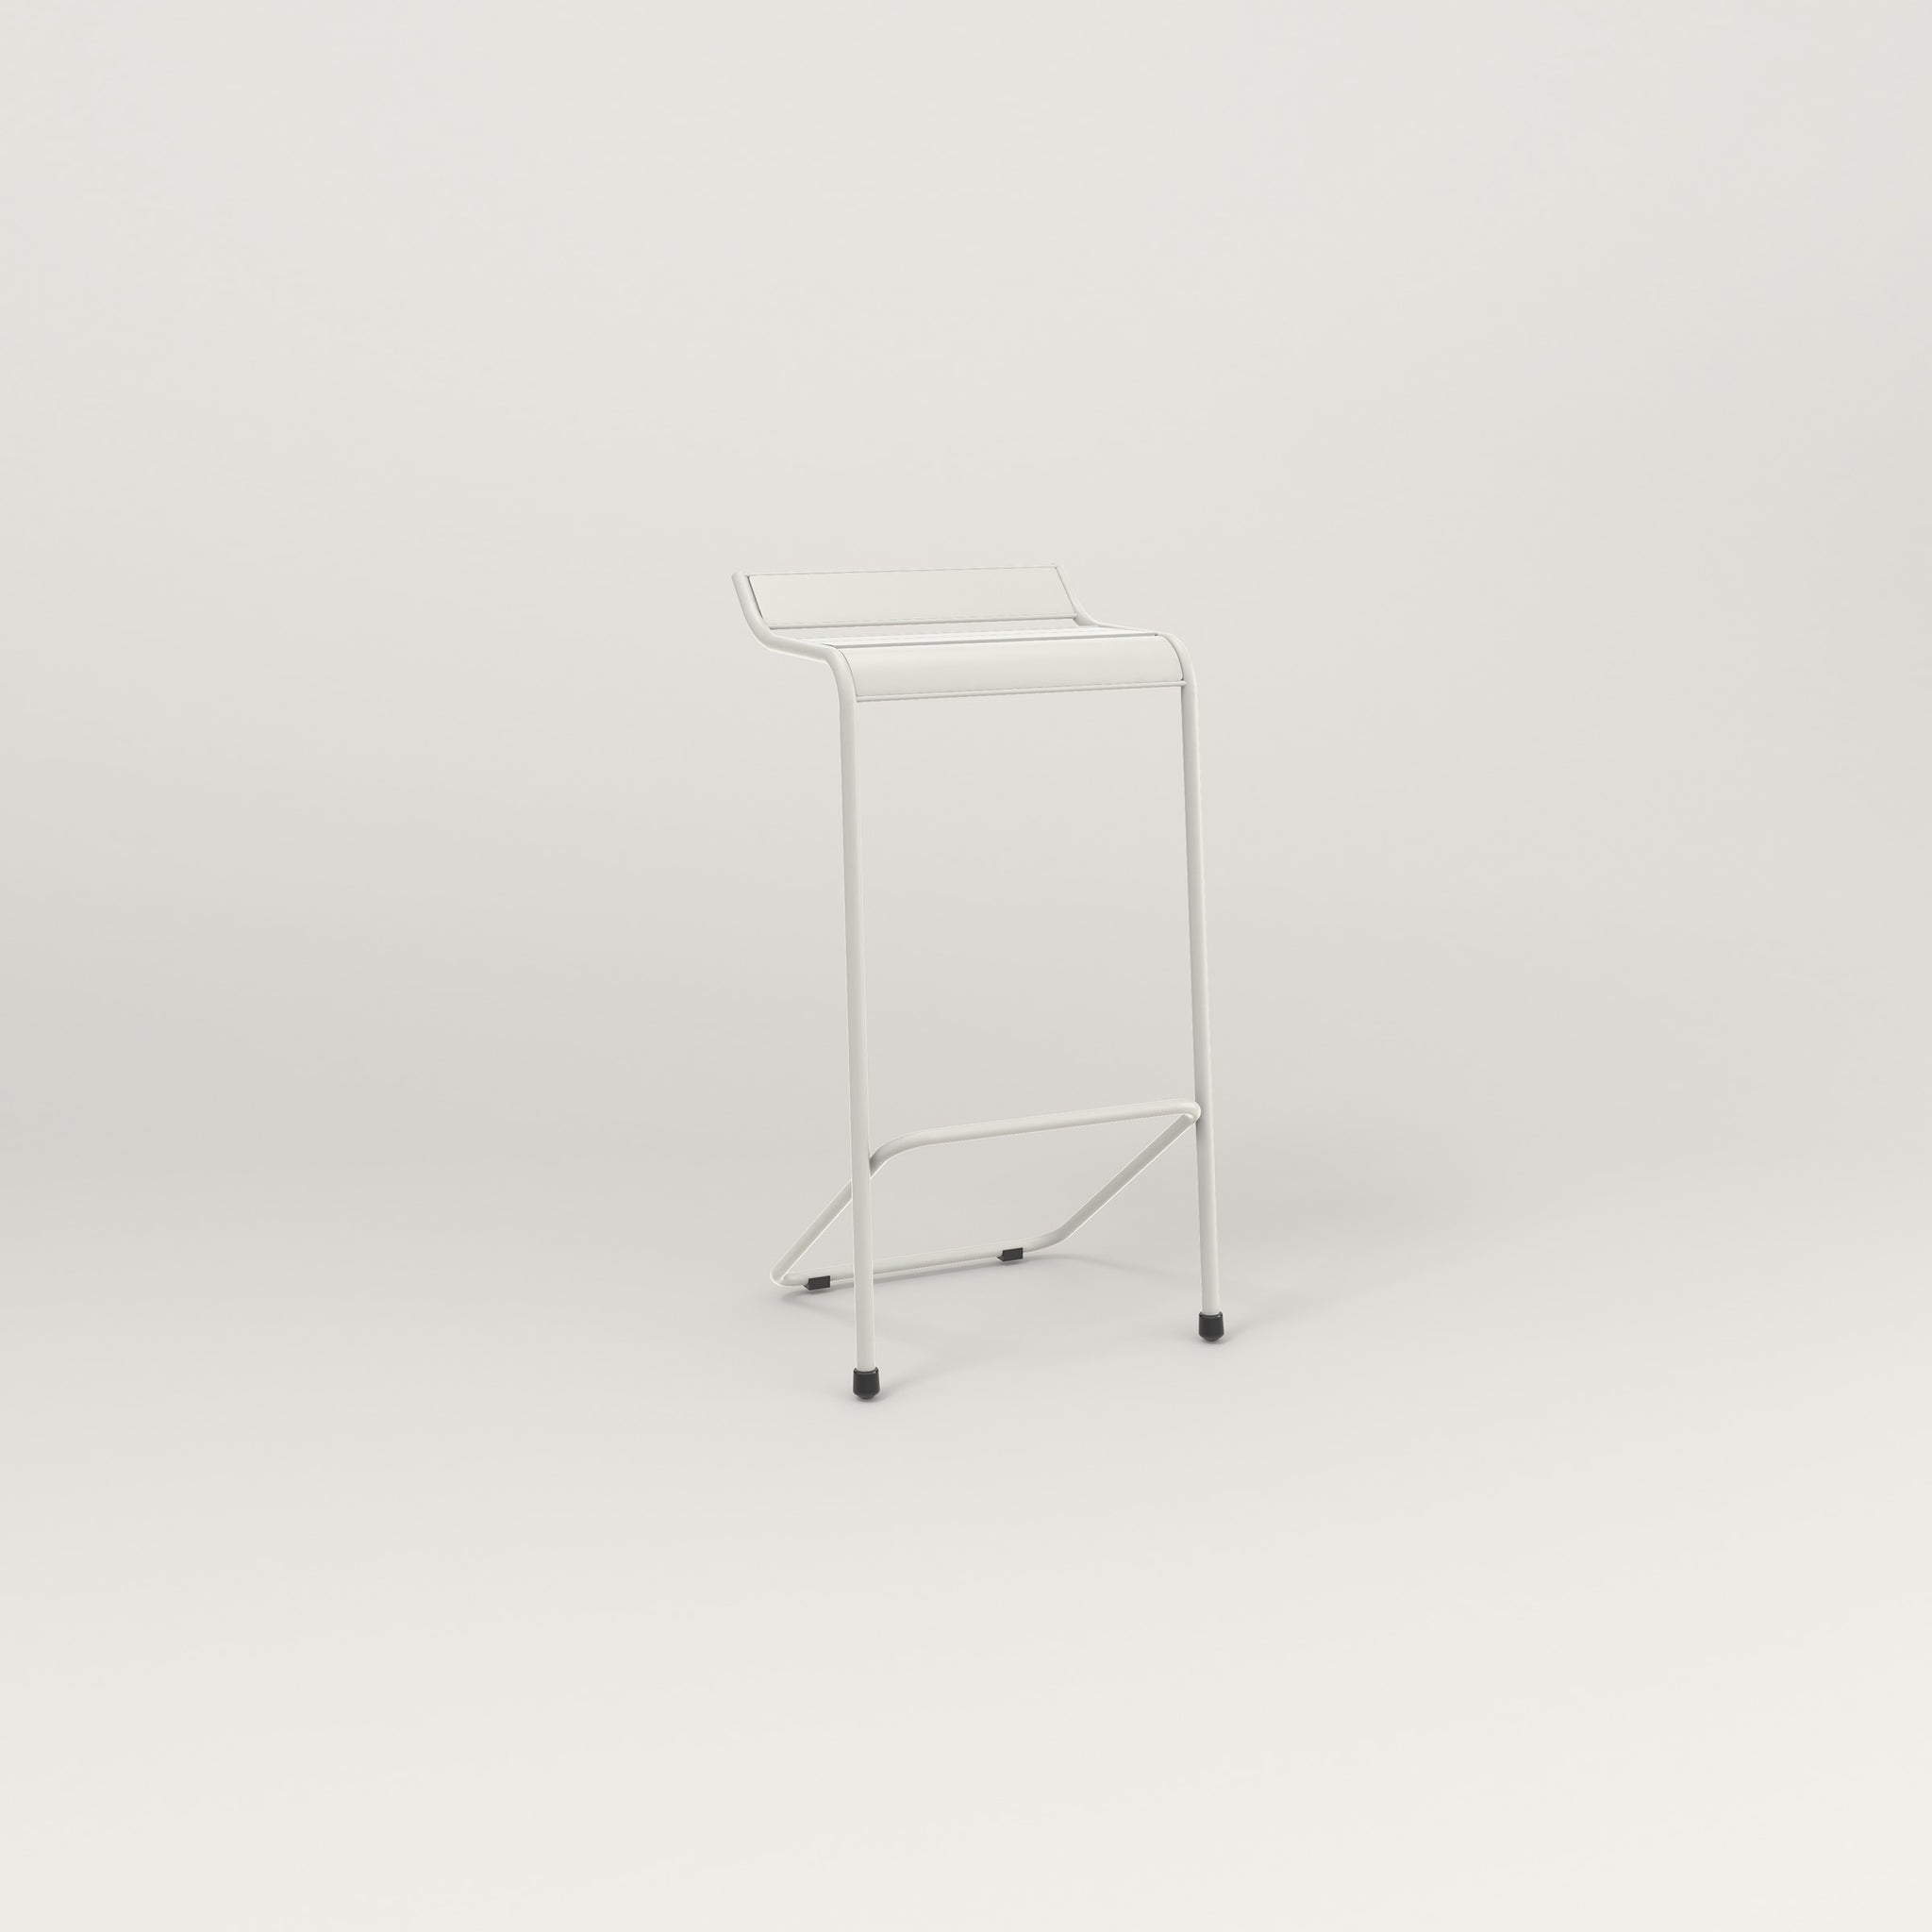 RAD Signature Bar Stool Slatted Steel in white powder coat.